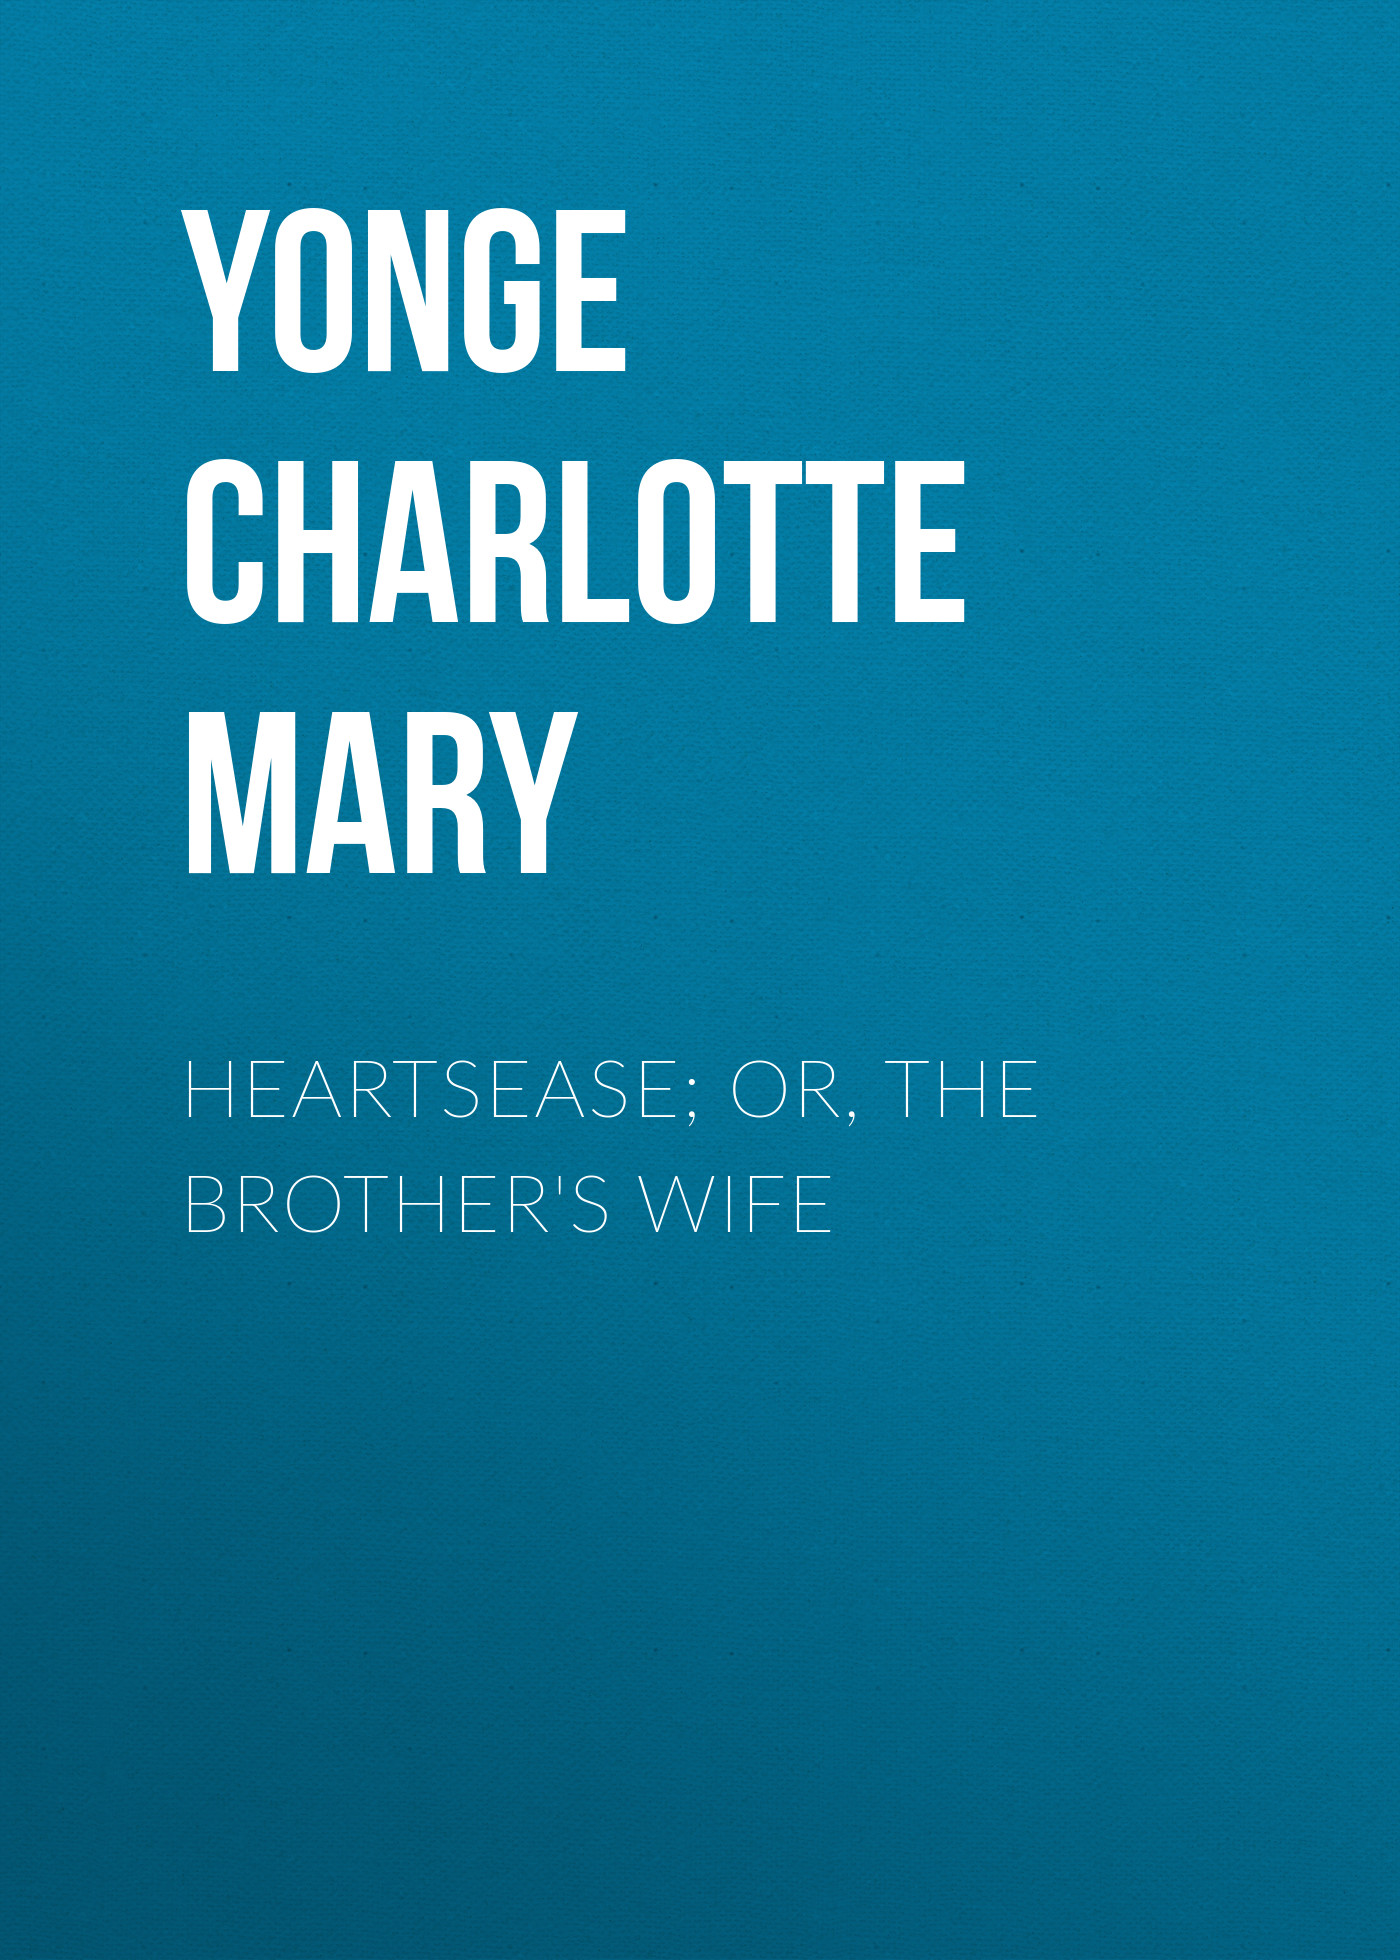 Yonge Charlotte Mary Heartsease; Or, The Brother's Wife yonge charlotte mary countess kate